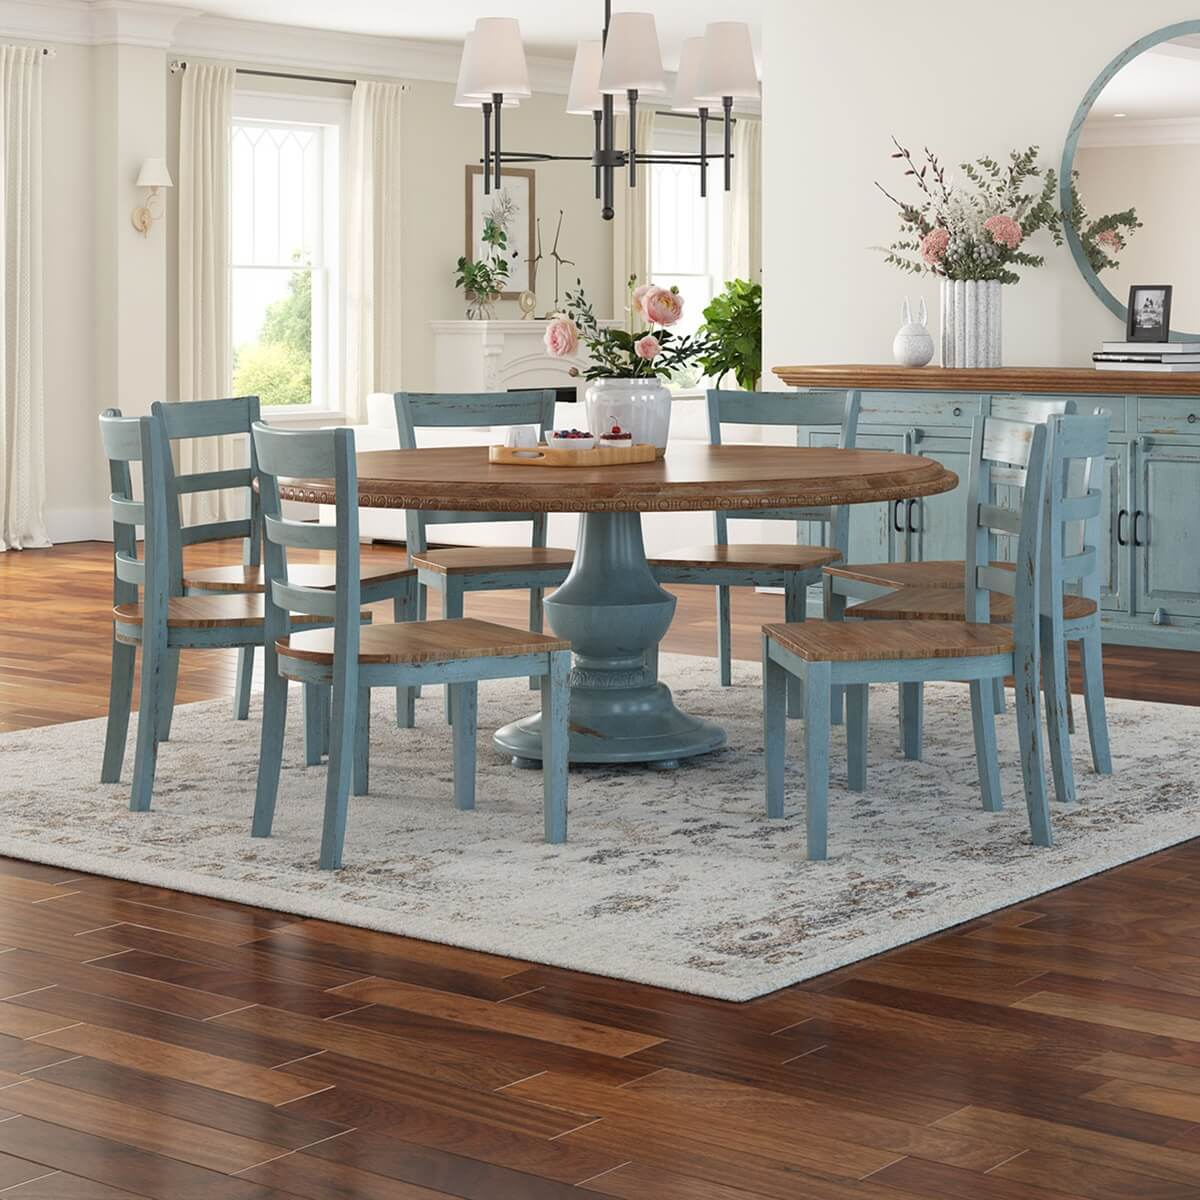 Solid Wood Round Dining Table Chair, Farmhouse Dining Room